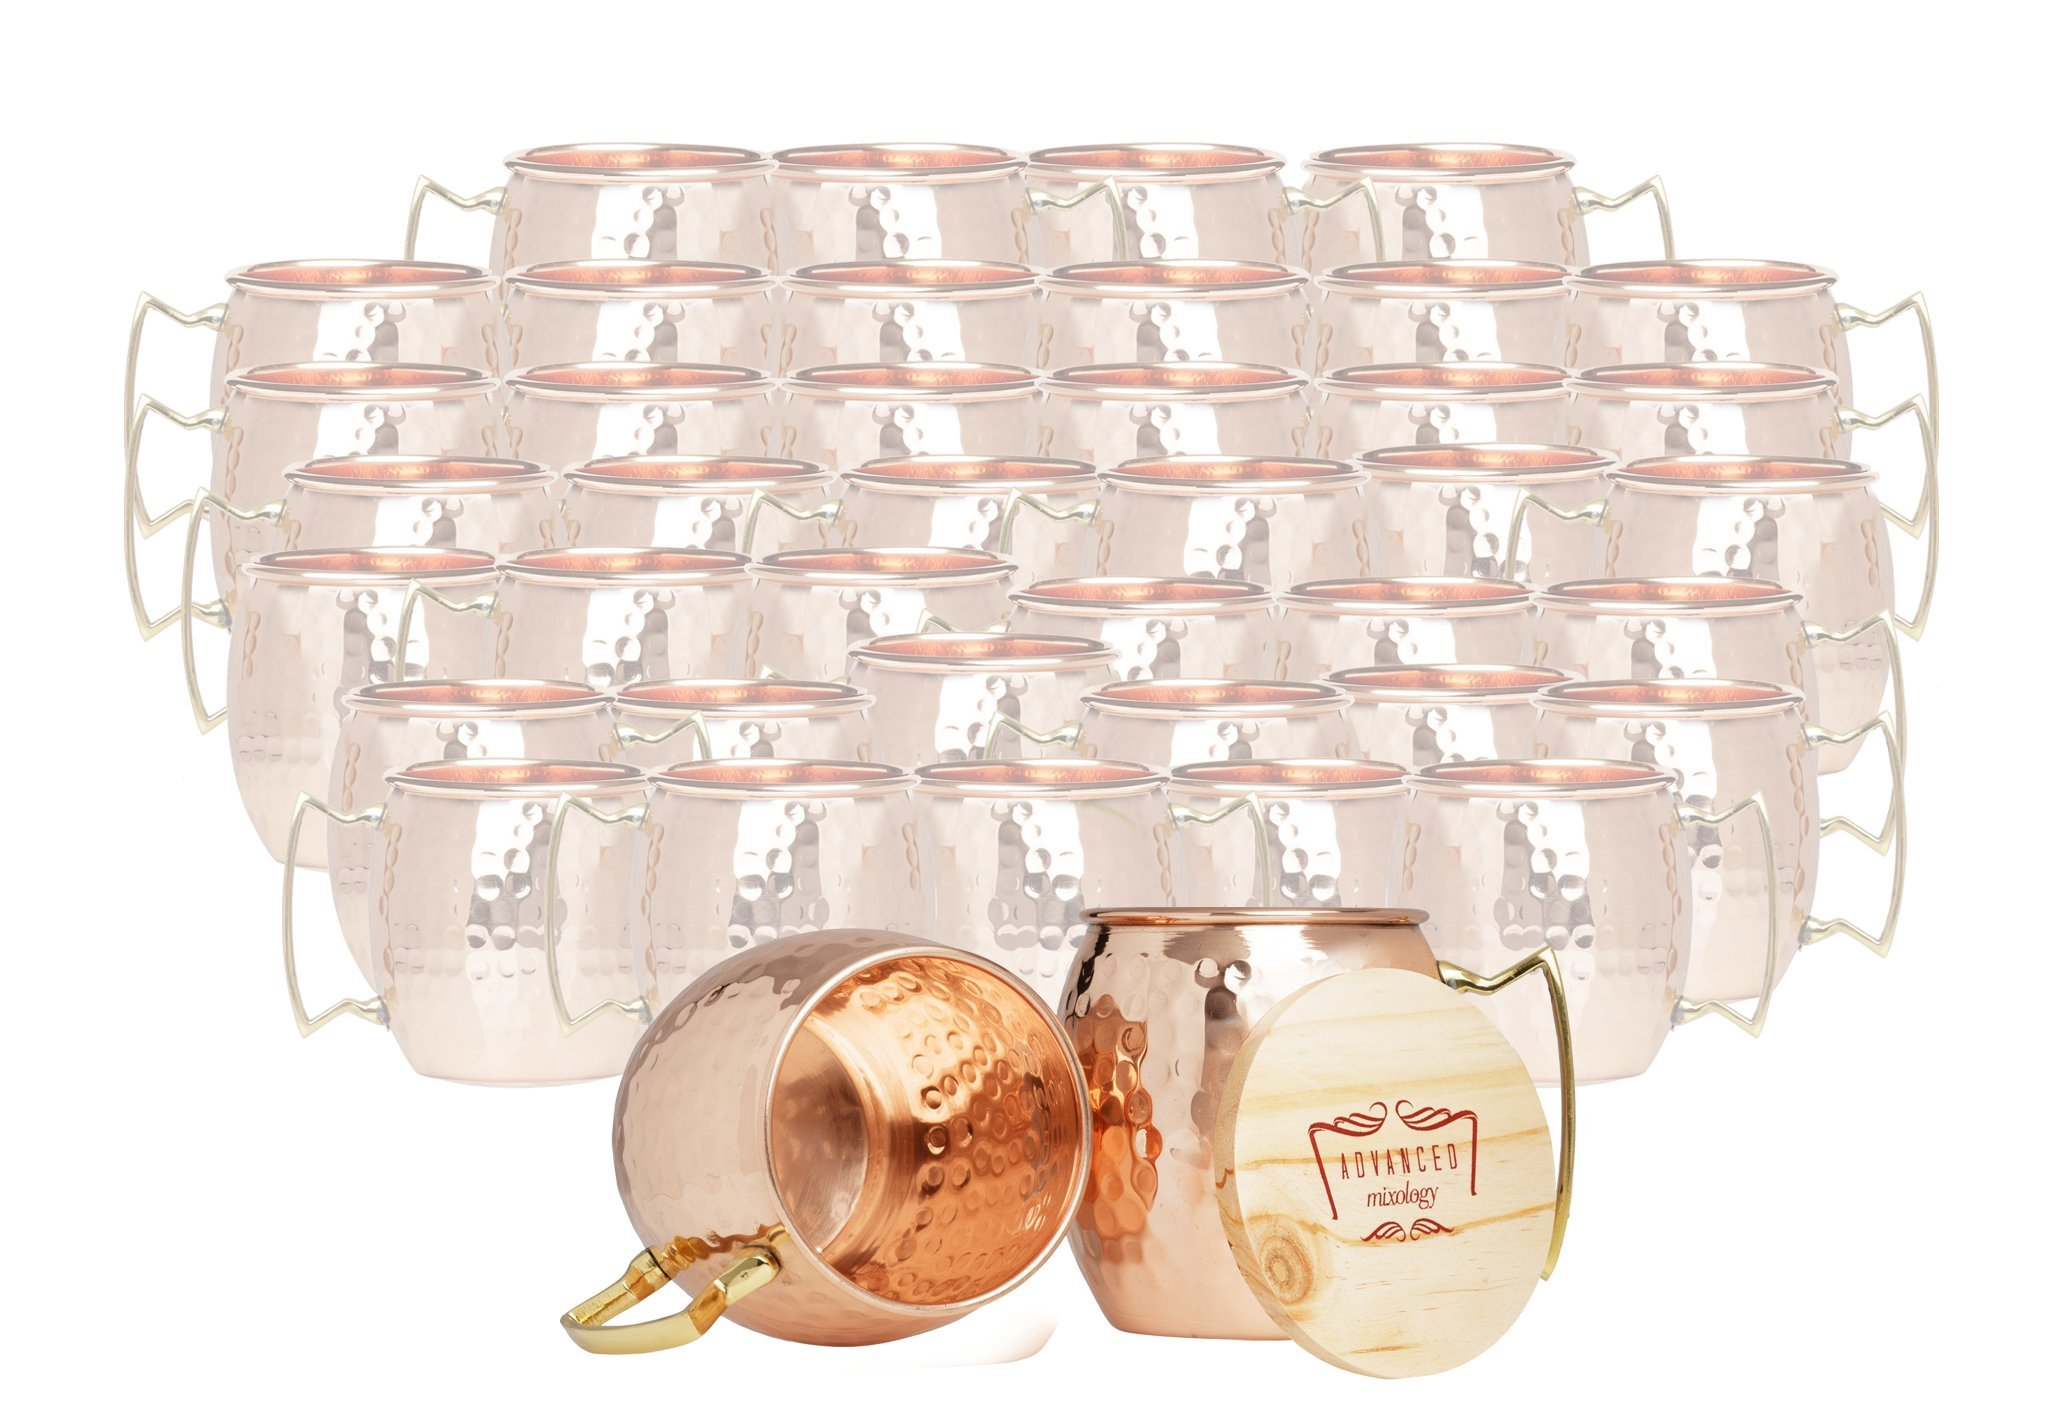 Set of 40 100% Pure Copper Moscow Mule Mugs By Advanced Mixology (16 oz each) with 40 Artisan Hand Crafted Wooden Coasters - Barrel With Brass Handle